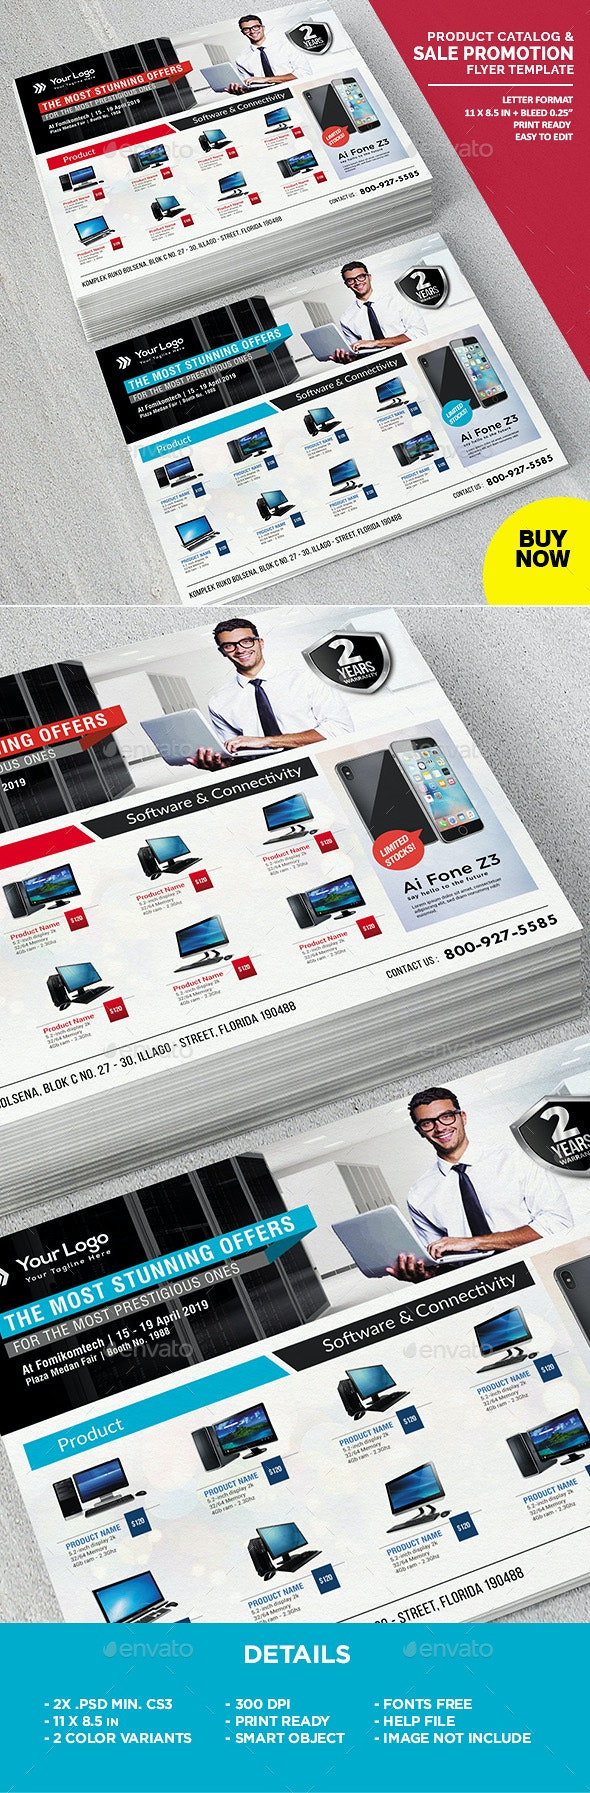 Product Catalog Flyer Template - Commerce Flyers